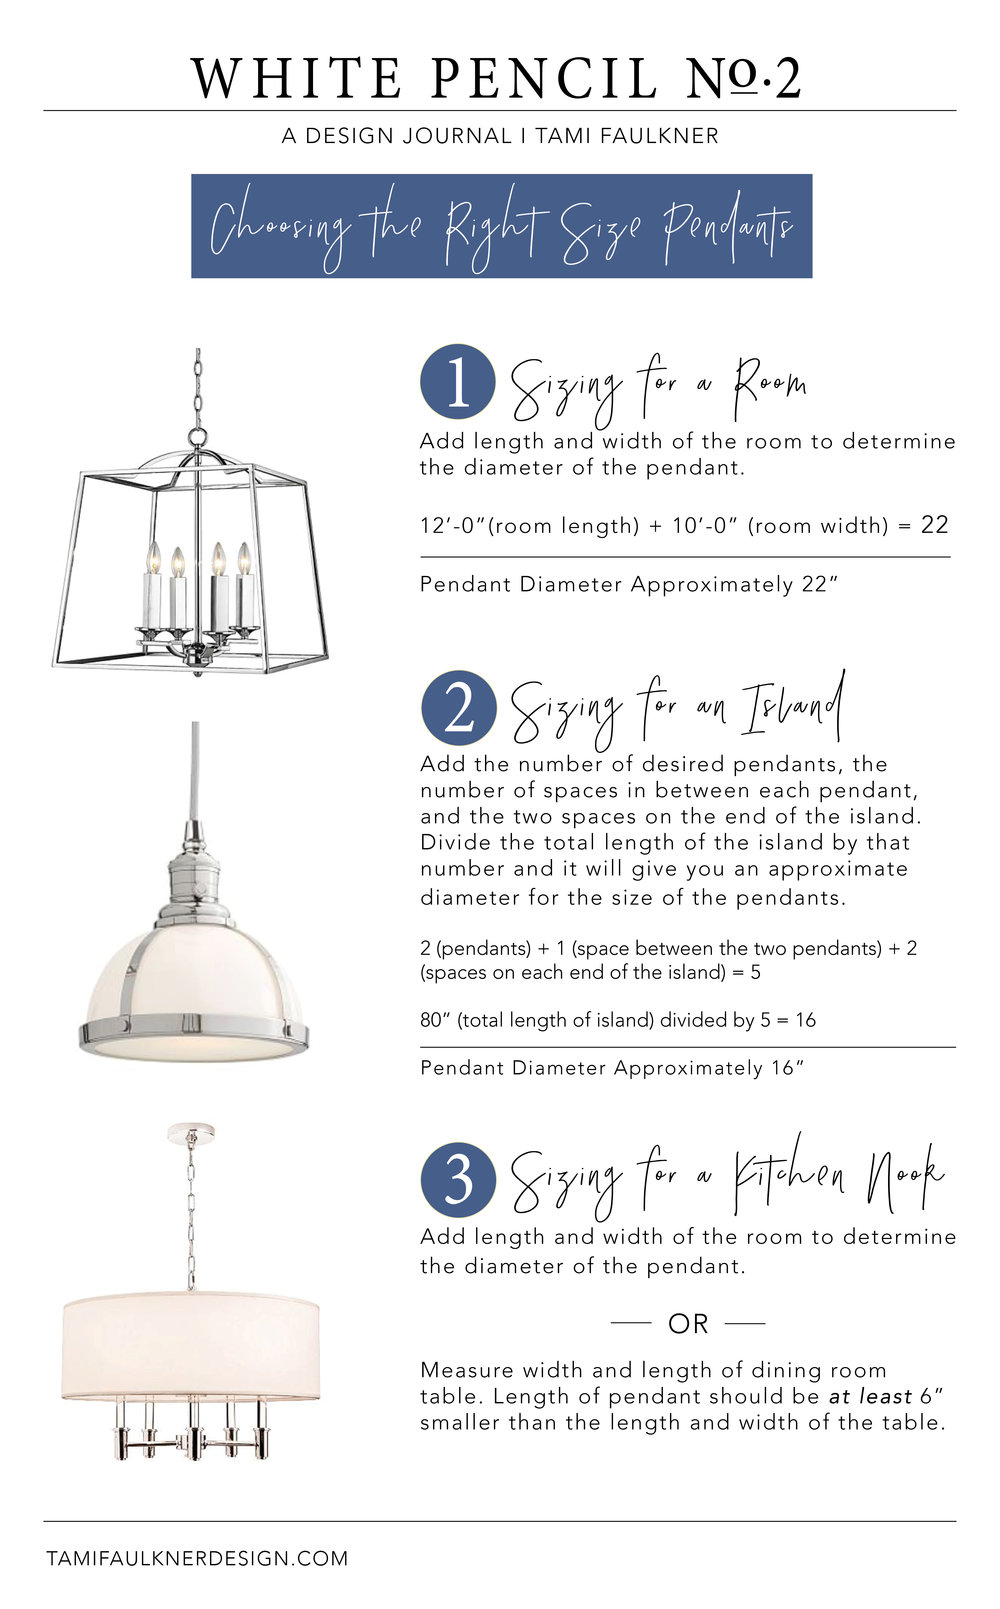 tami faulkner design tips for choosing pendants